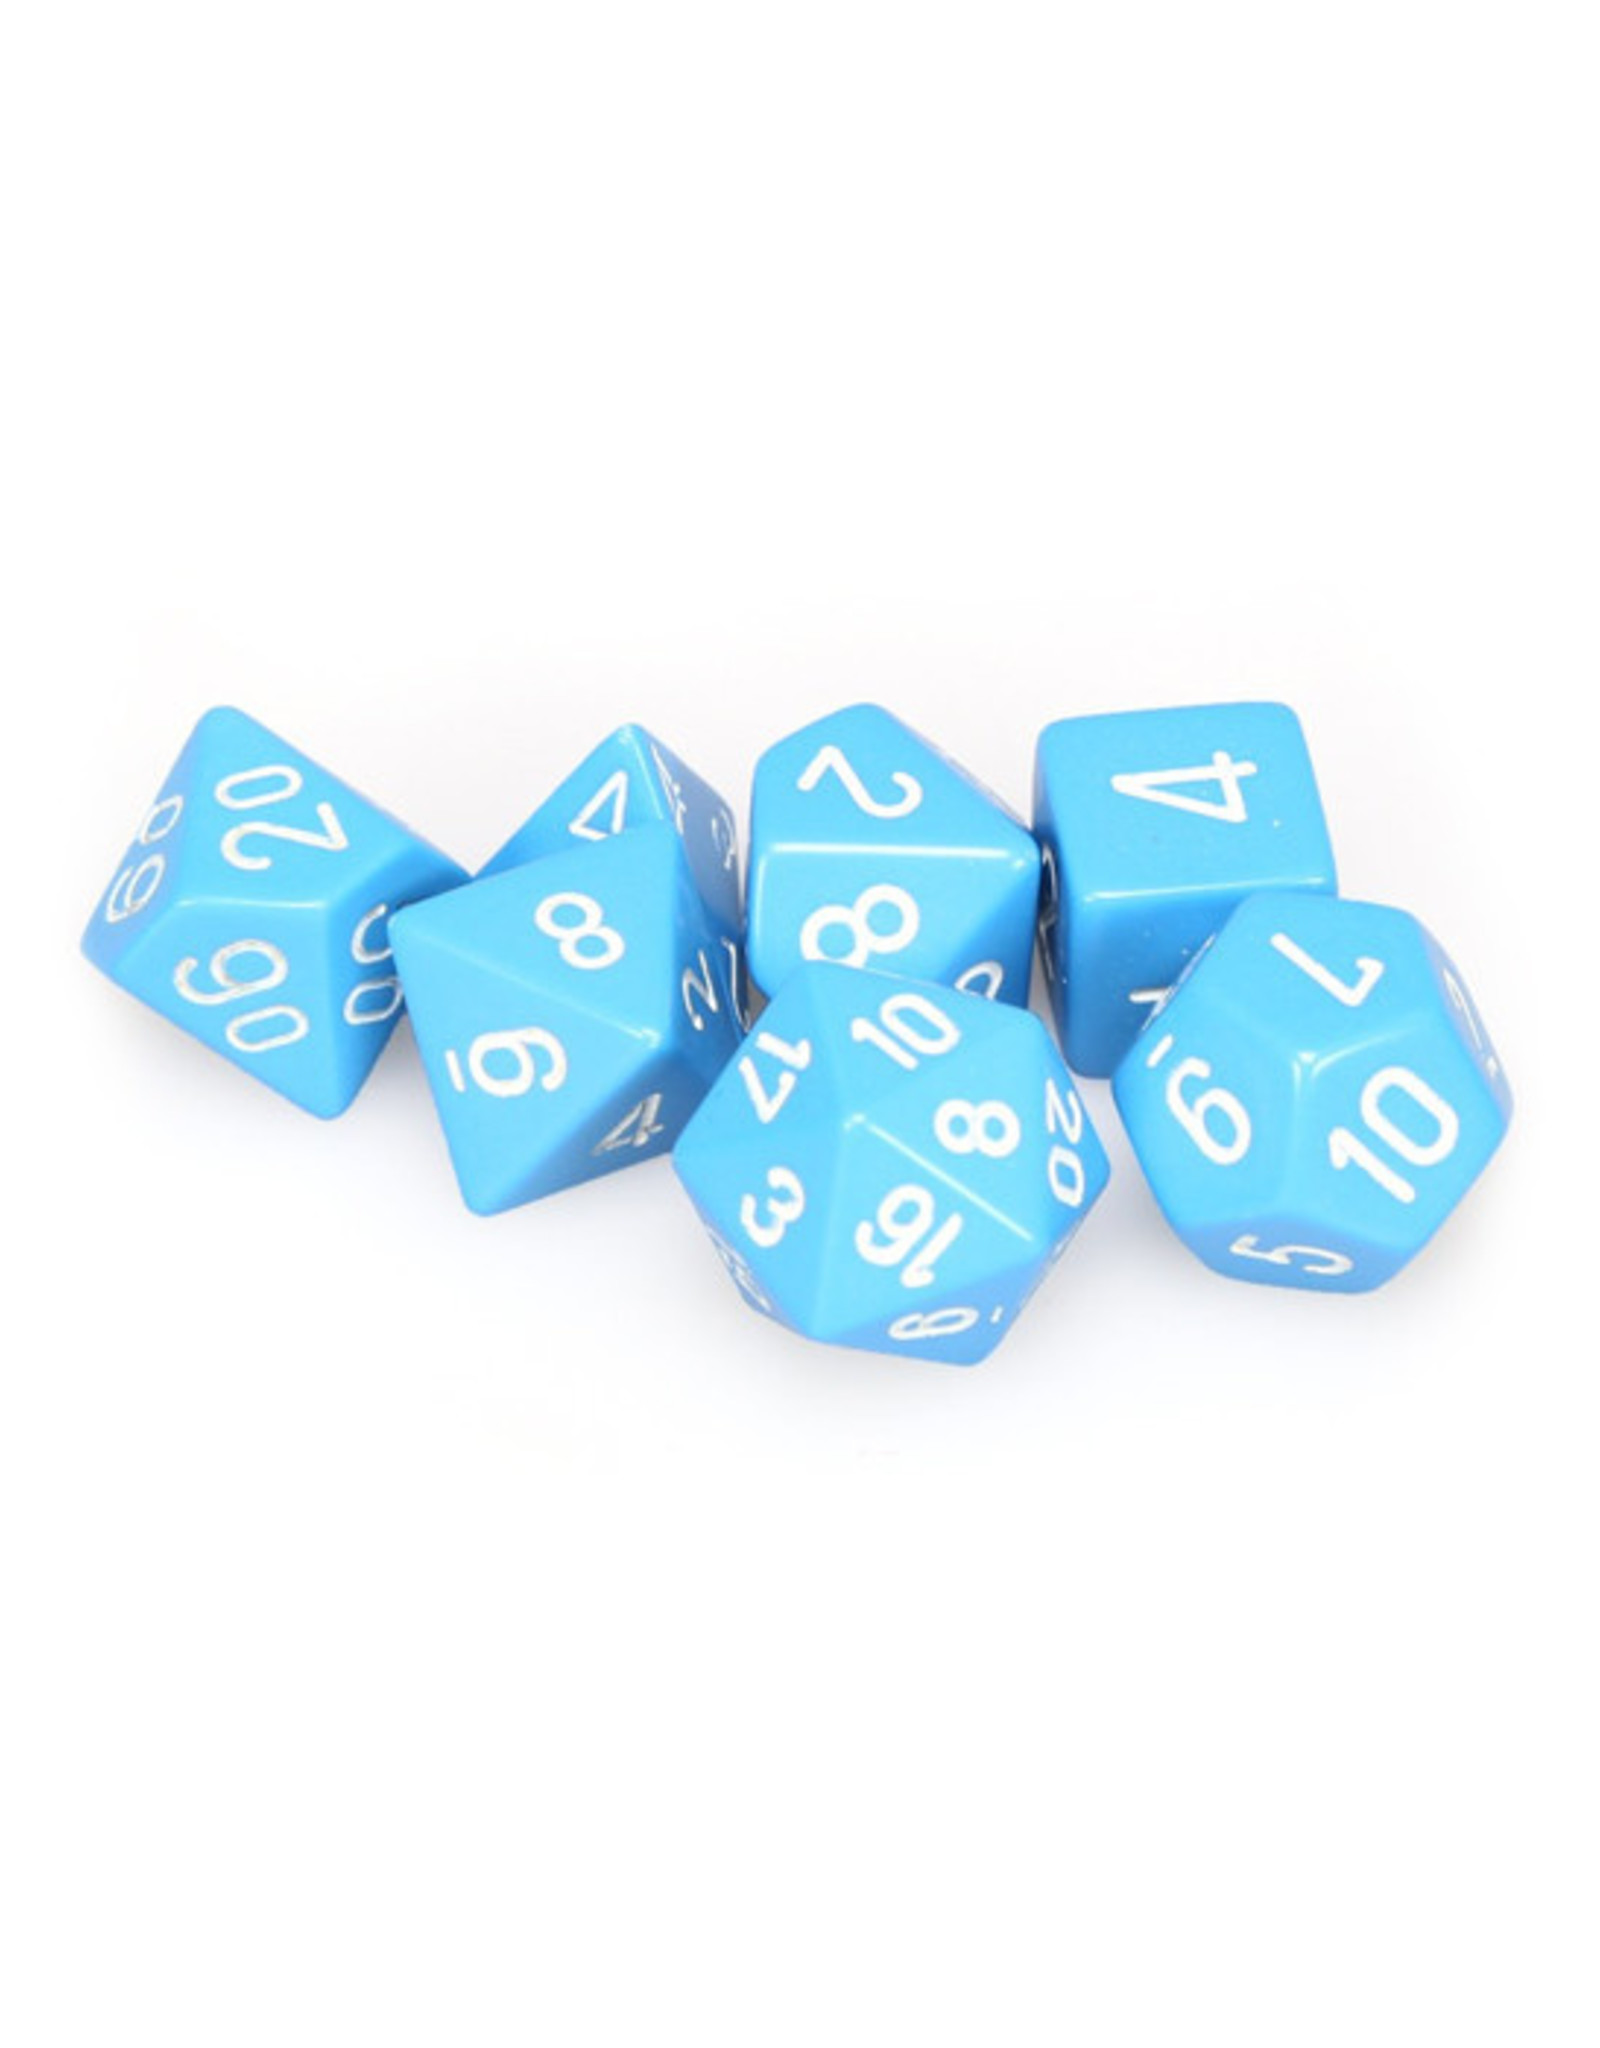 Chessex Chessex: Poly 7 Set - Opaque - Light Blue w/ White